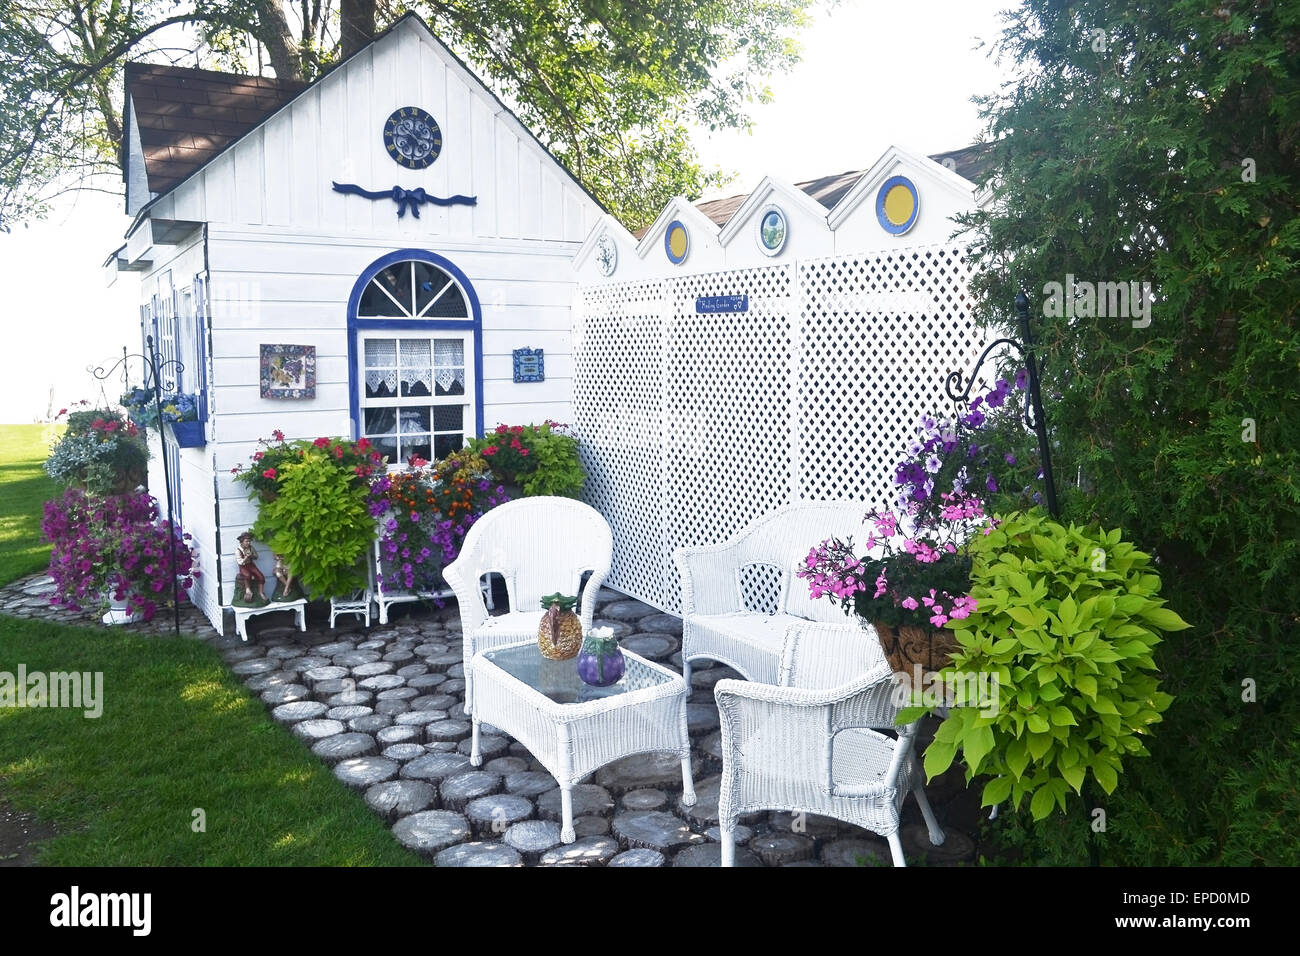 A Beautiful Small Garden Shed With Nice Chairs And A Lot Of Flowers Stock Photo Alamy